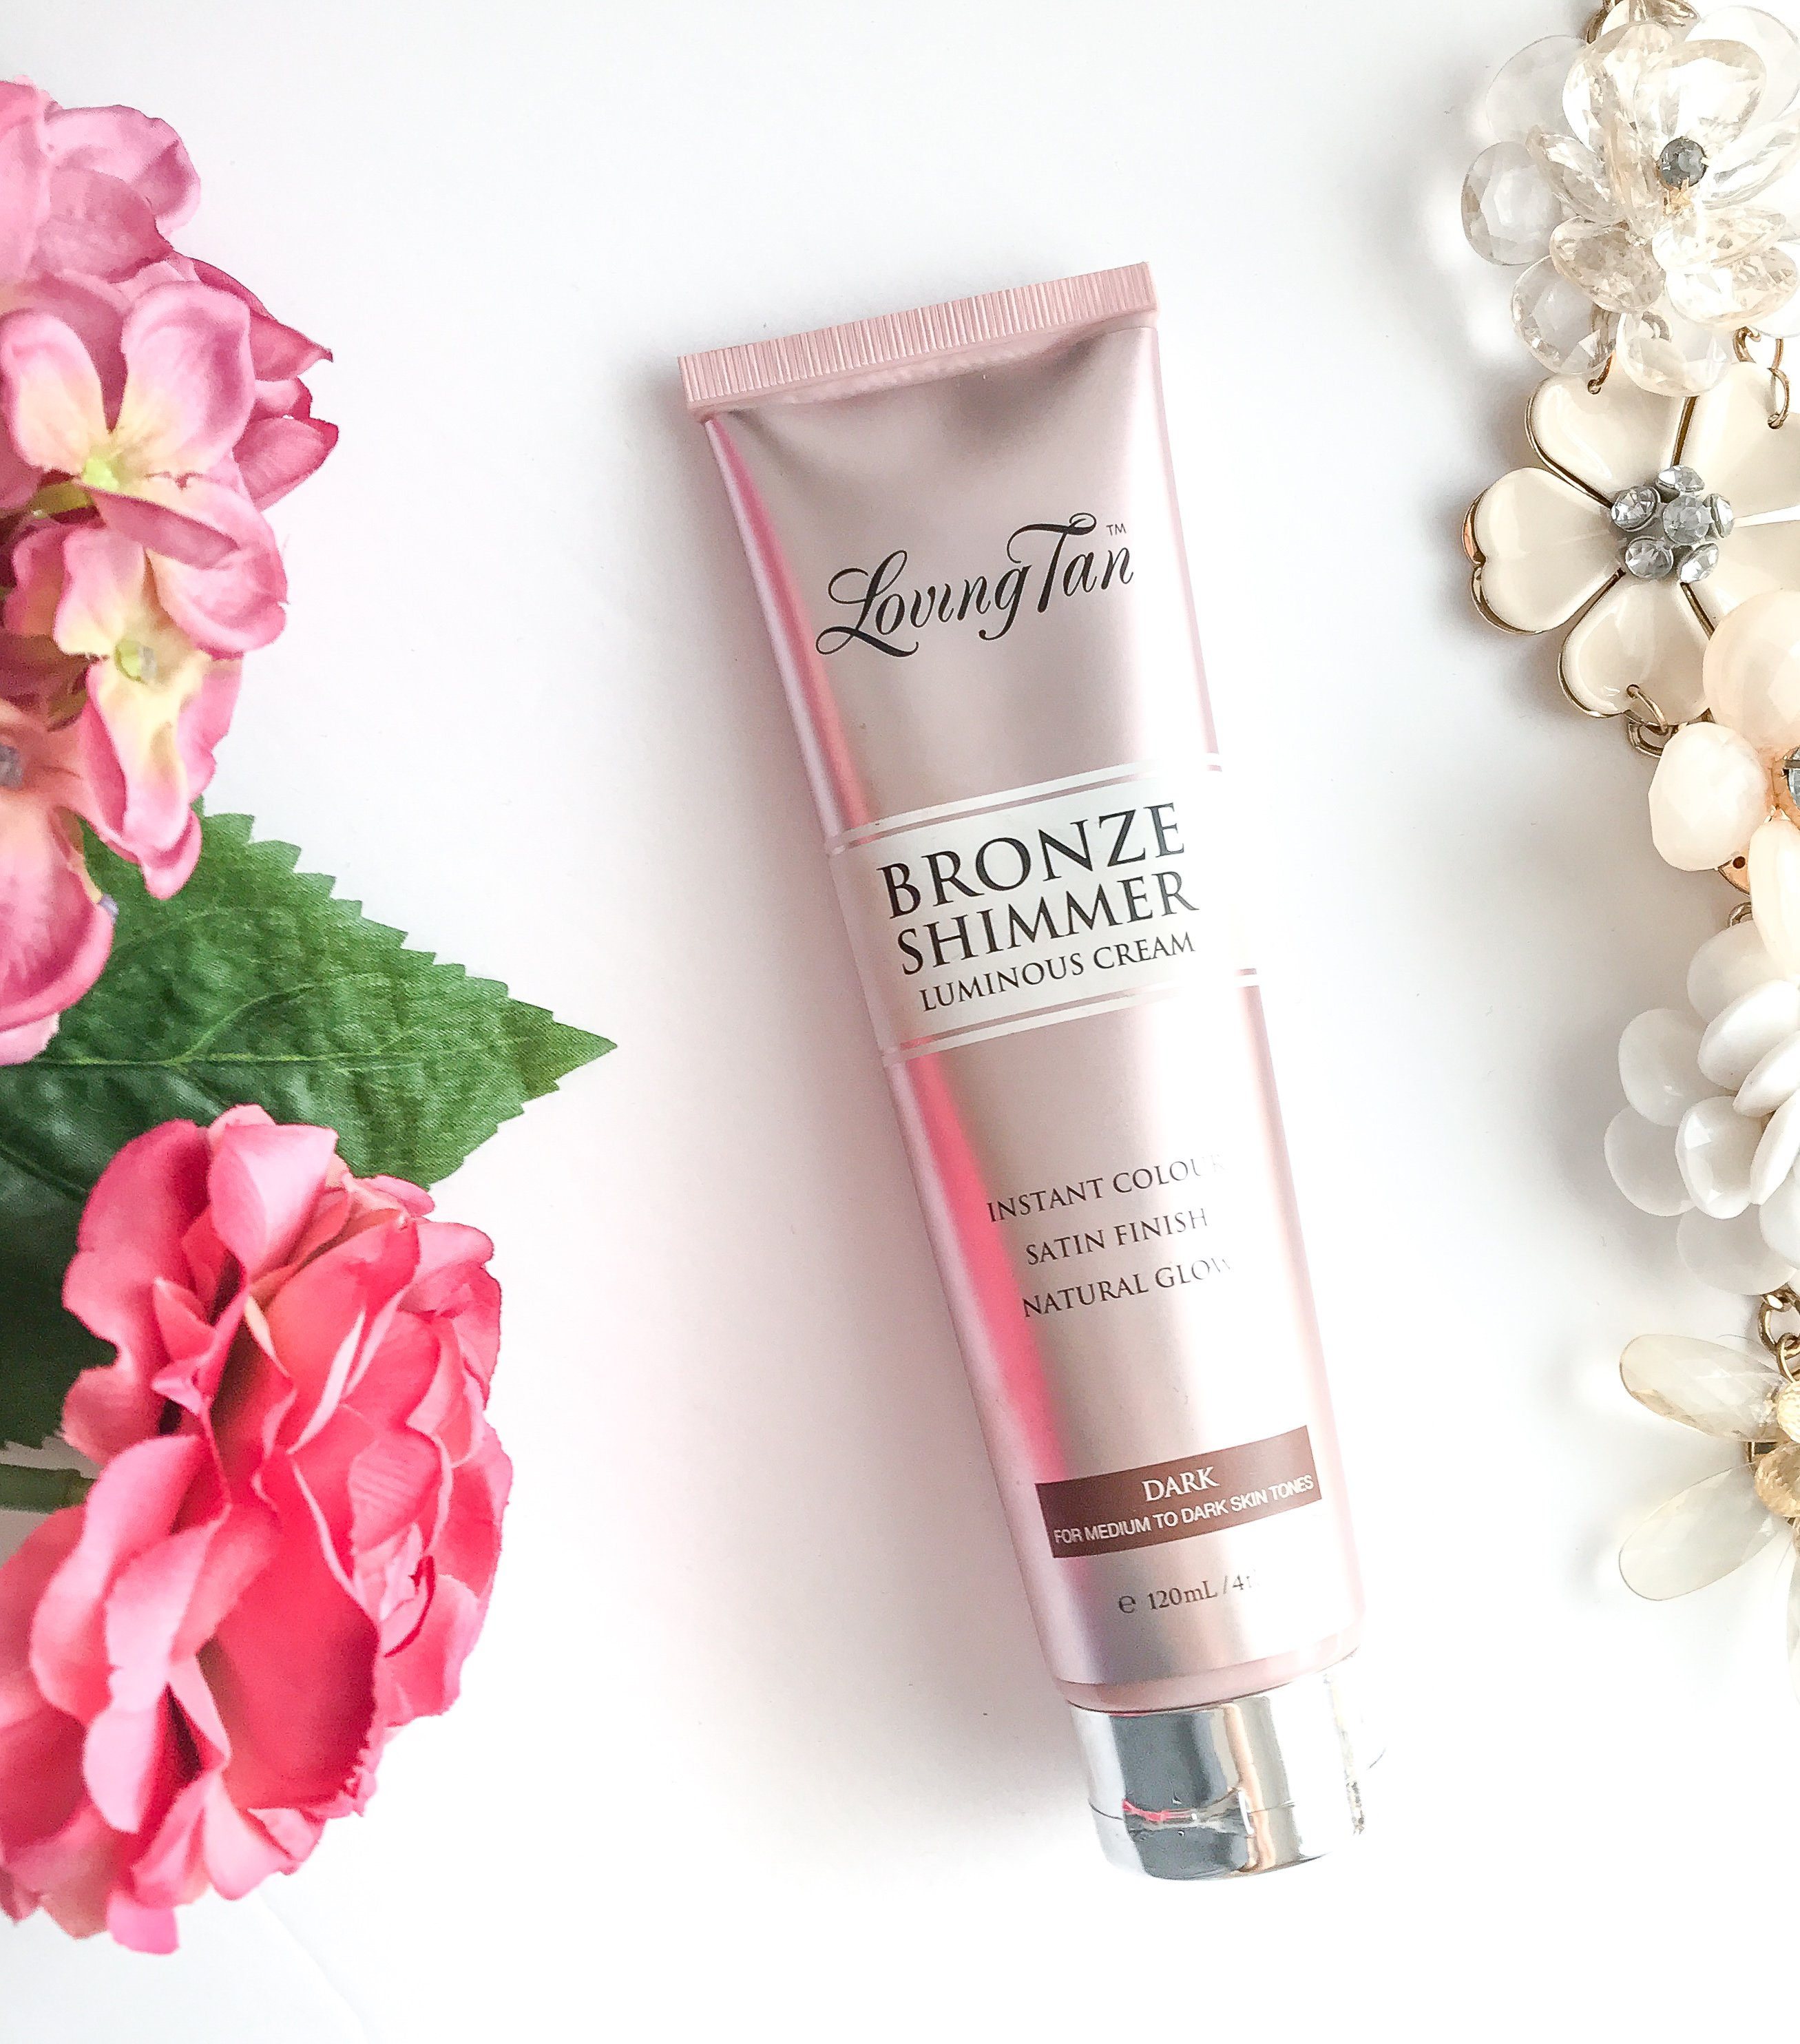 e0ea6f66a0100 Loving Tan Bronze Shimmer Luminous Cream | Review - Kelsie Kristine